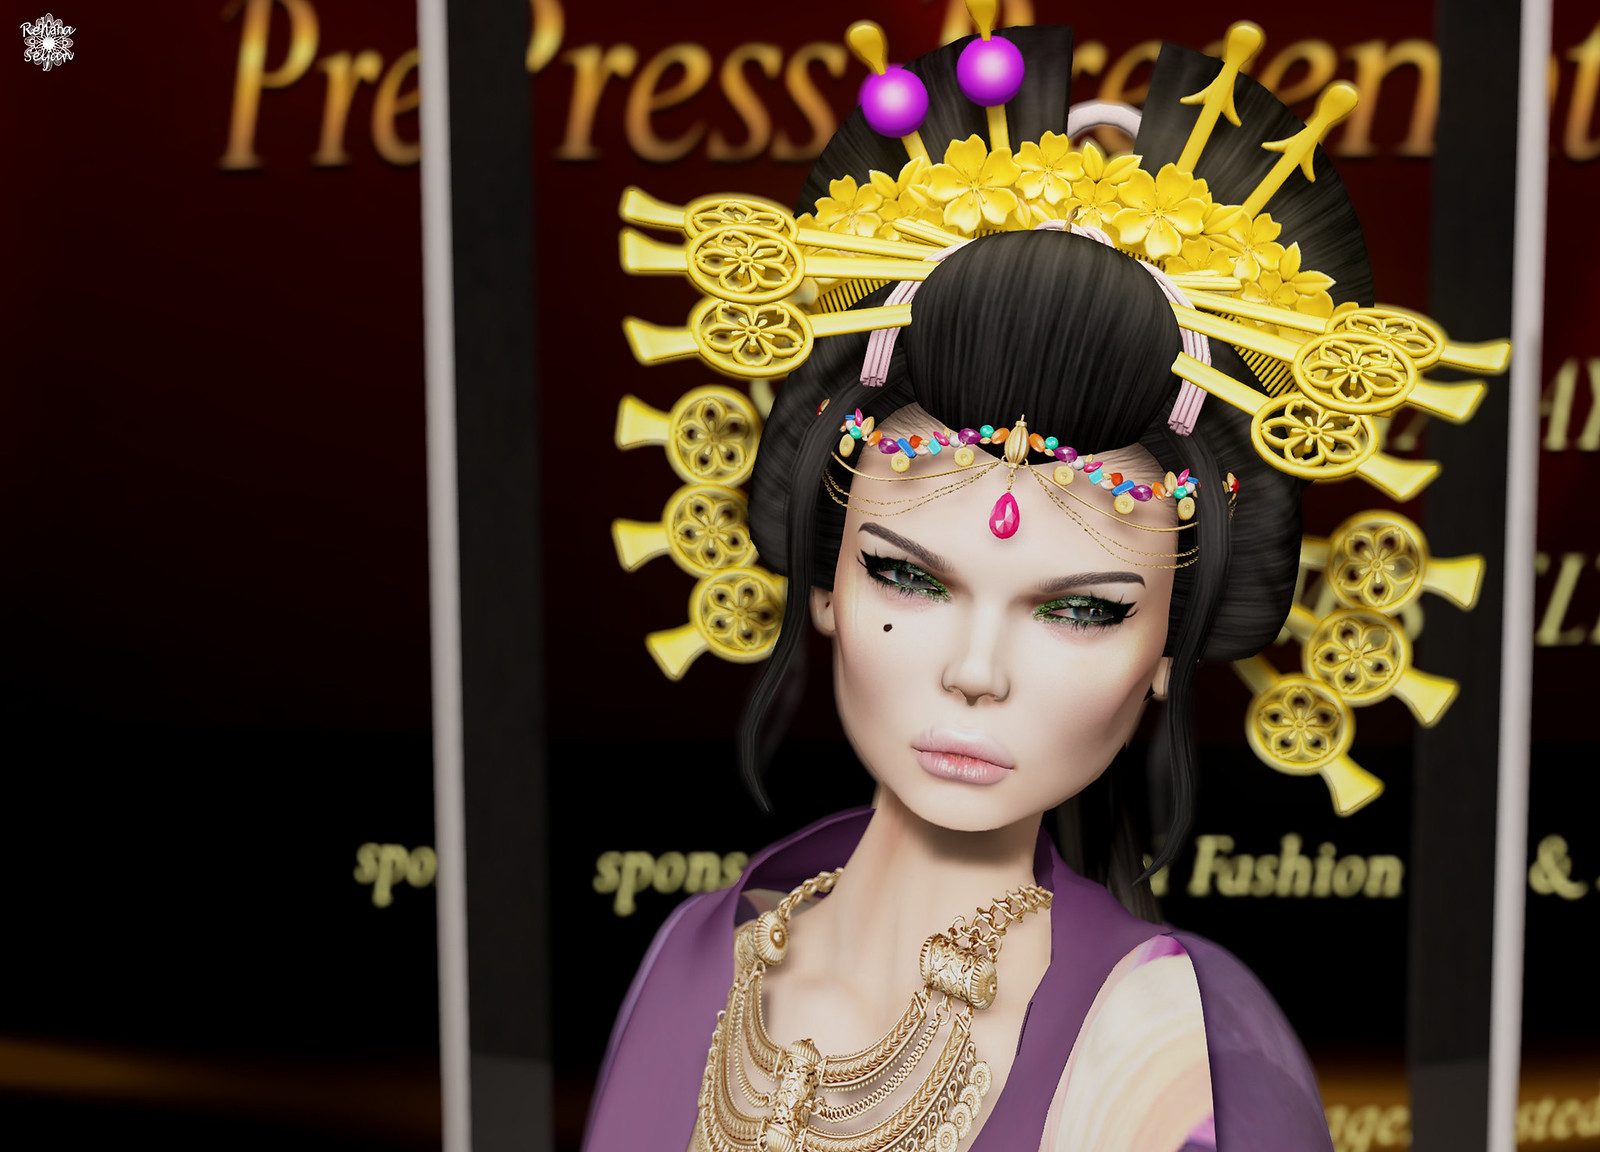 MISS SL 2018 - Press Presentation